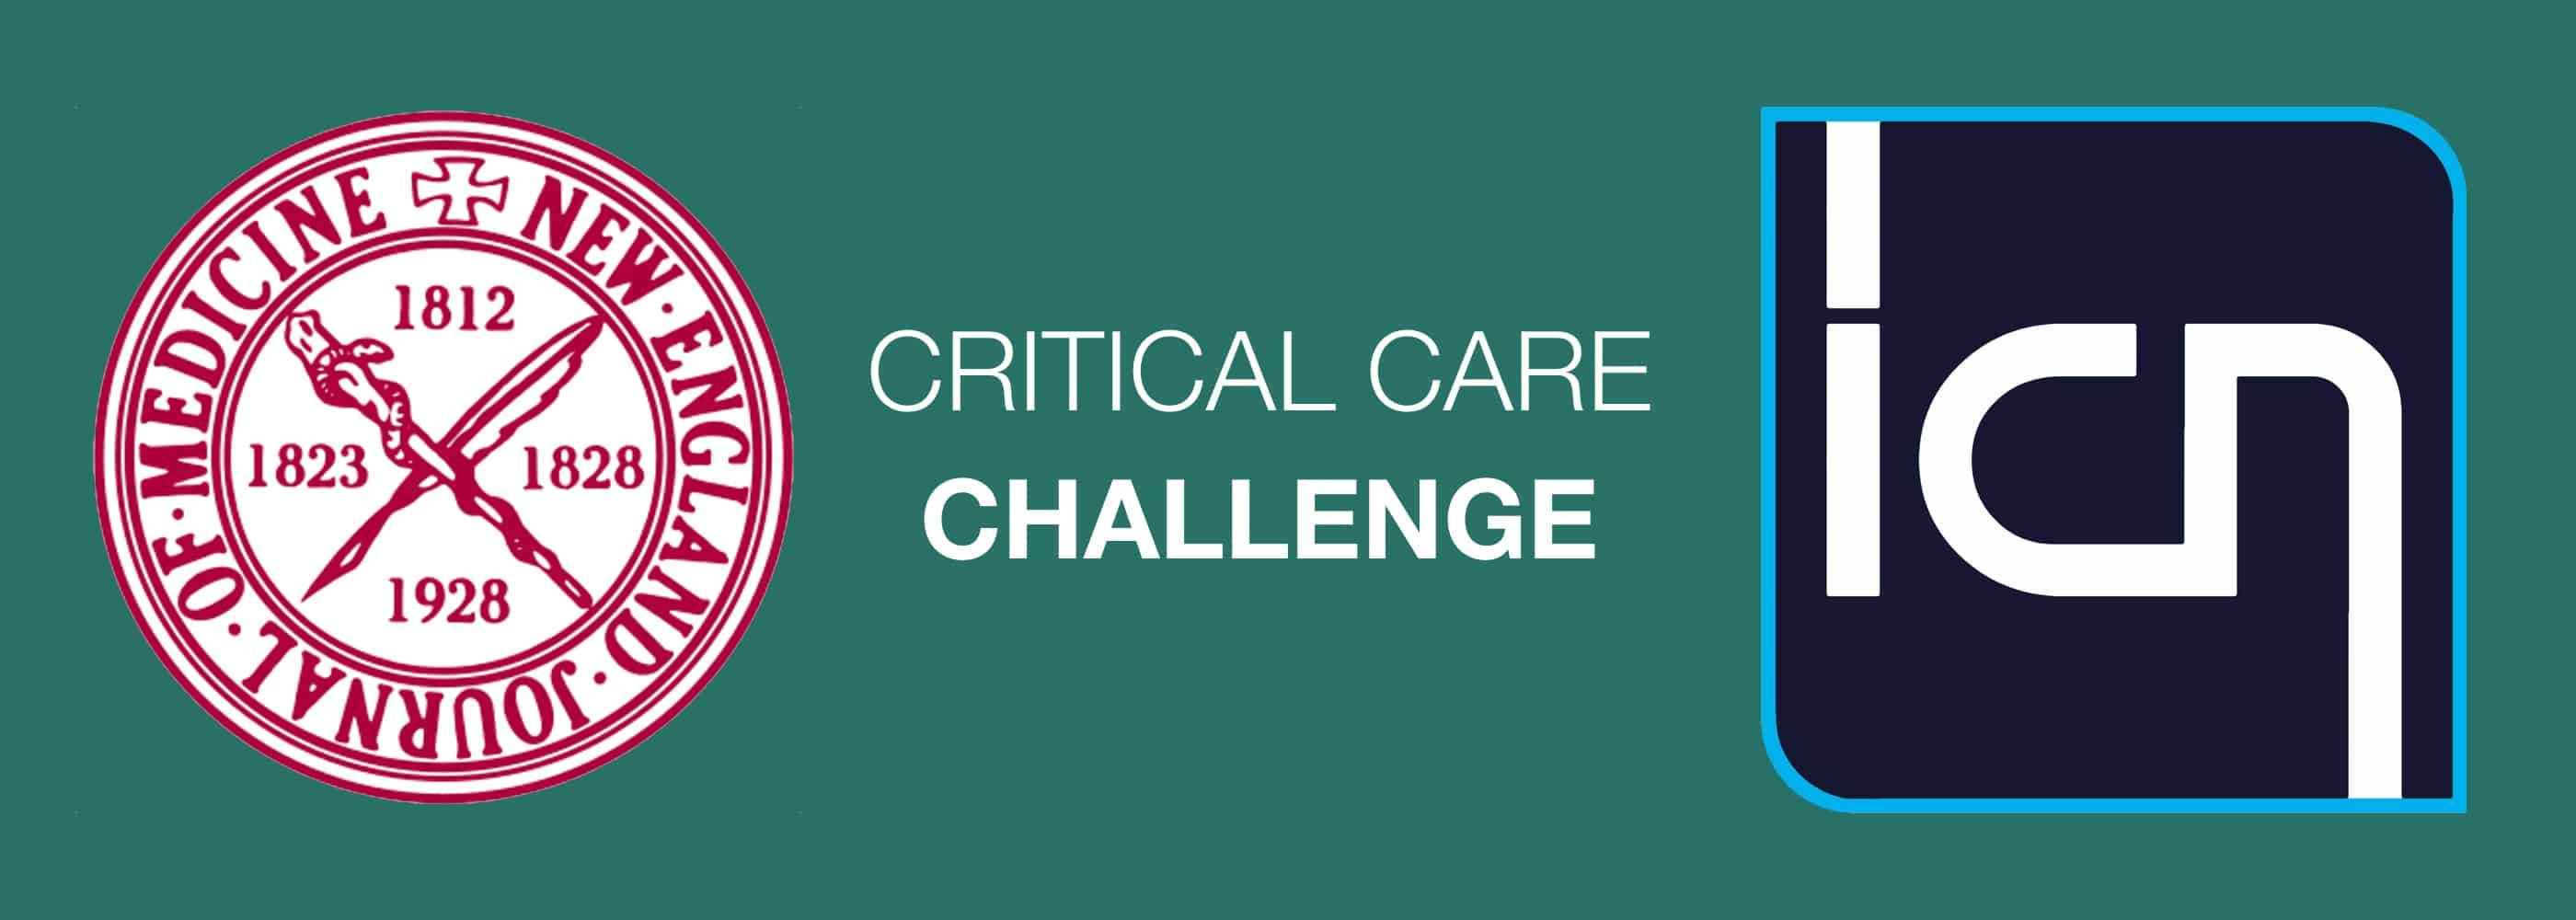 Clinical Cases - Intensive Care Network